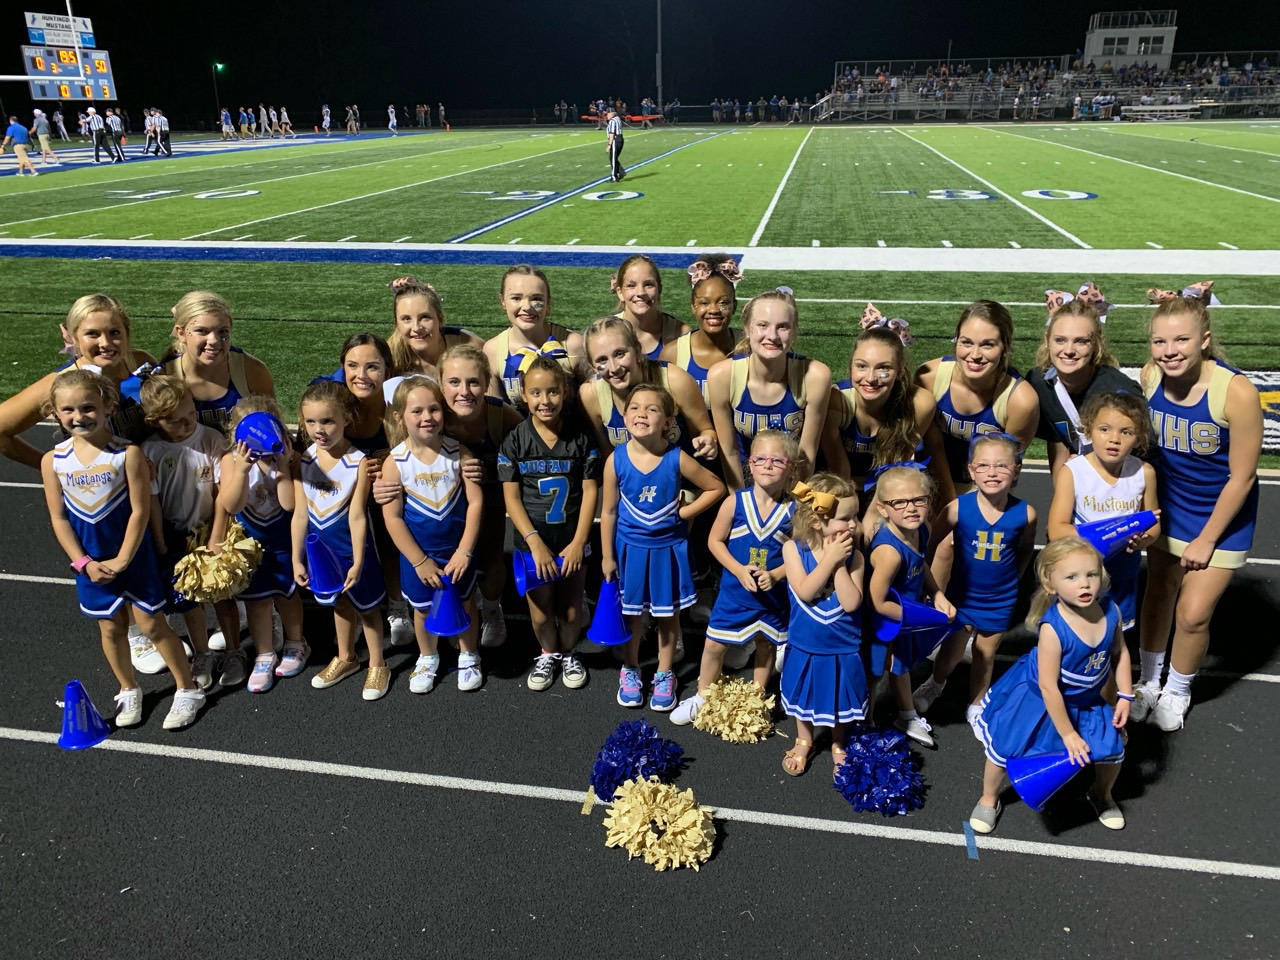 Cheer with the Cheerleaders